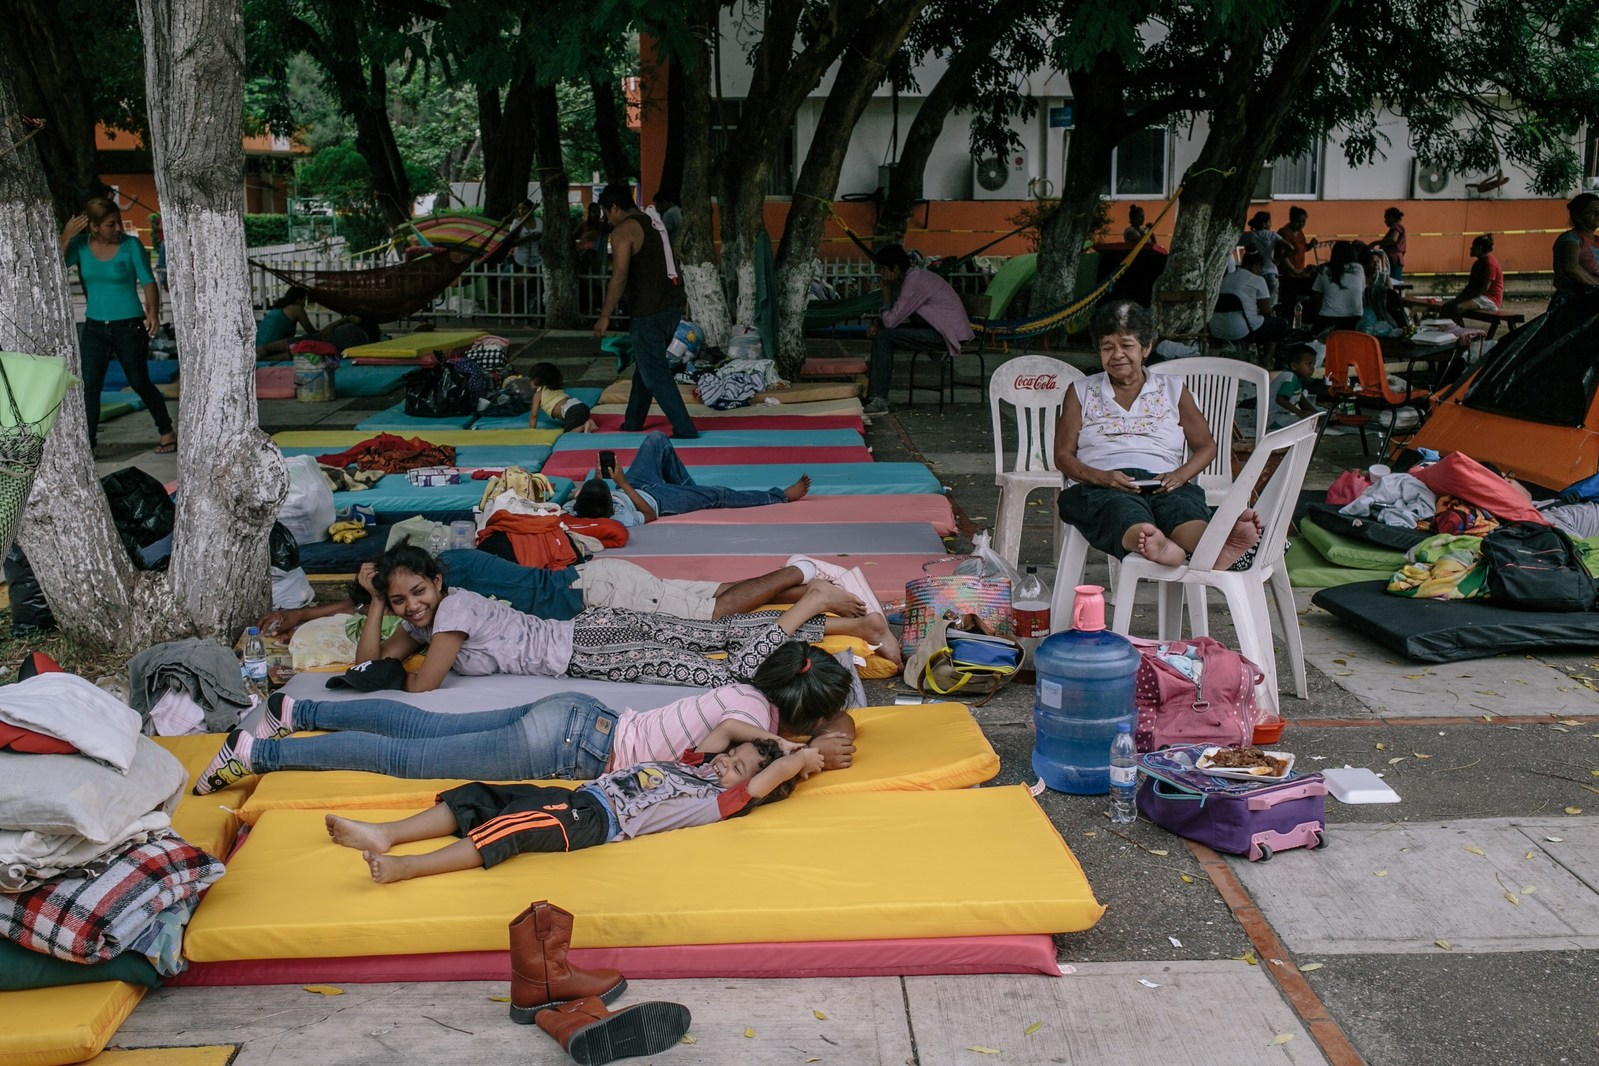 Families that lost their homes in the earthquake rest on mattress pads provided at a government-run shelter in Juchitan, Mexico. (Photo by Meghan Dhaliwal for Direct Relief)